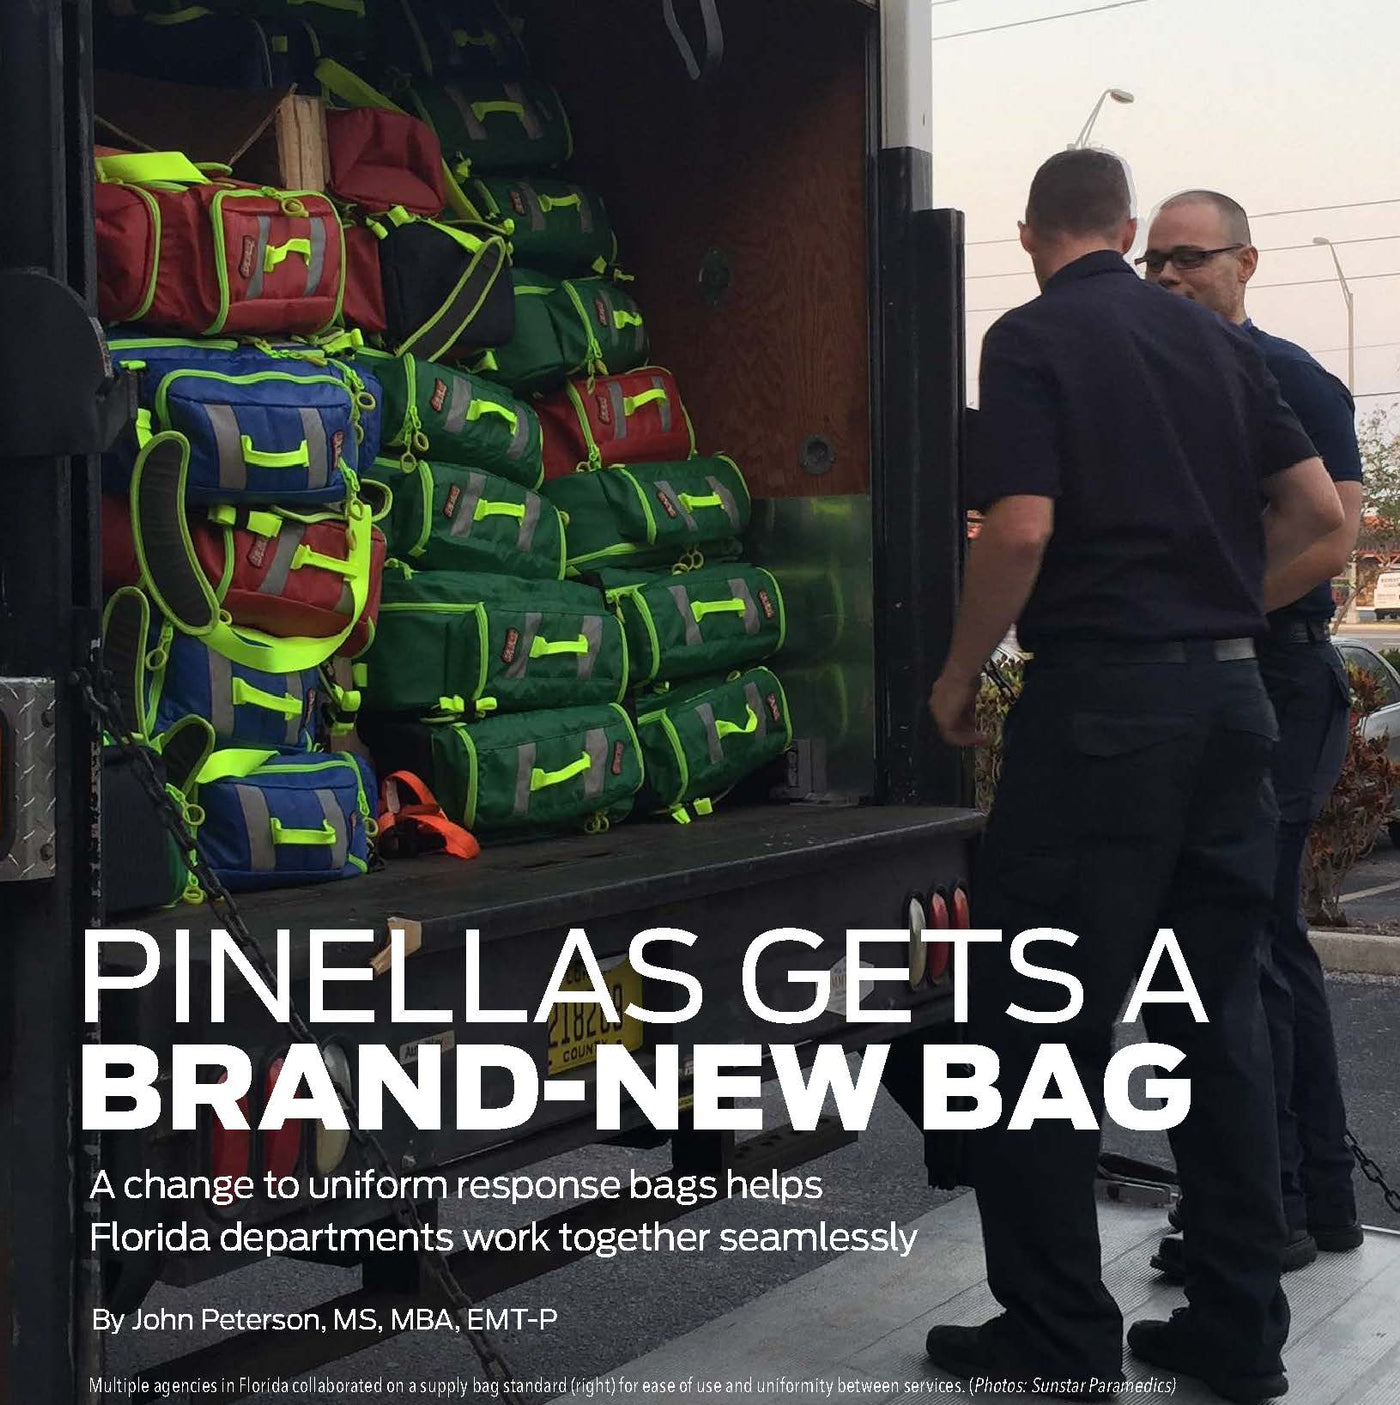 Pinellas Gets a Brand-New Bag - Statpacks